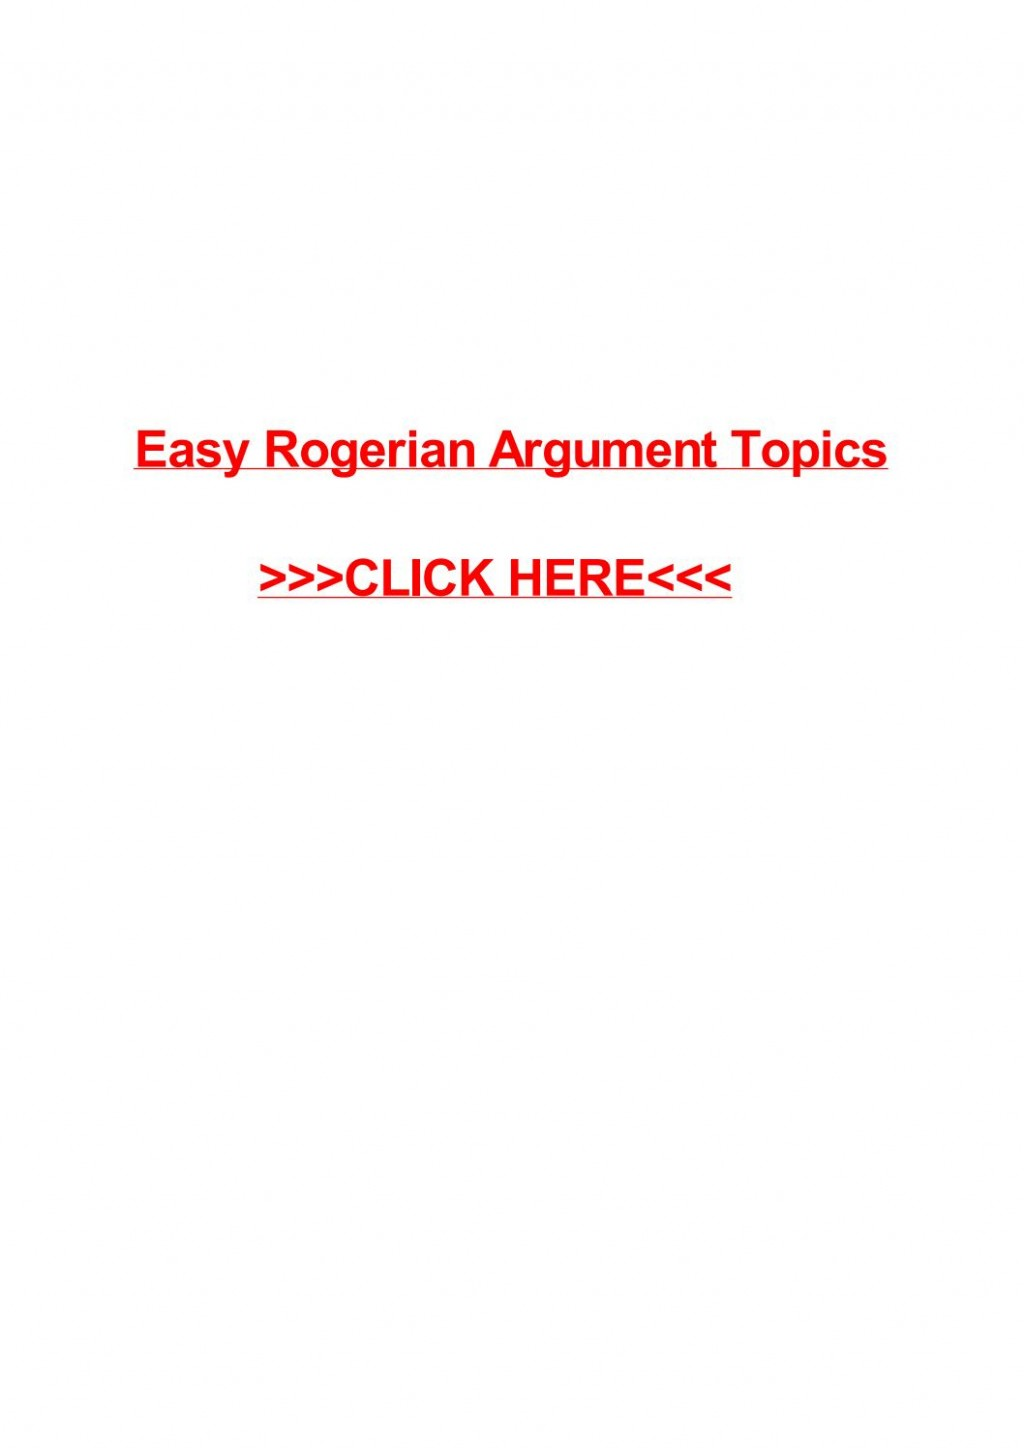 017 Page 1 Essay Example Rogerian Surprising Topics Argument Topic Ideas Method Large